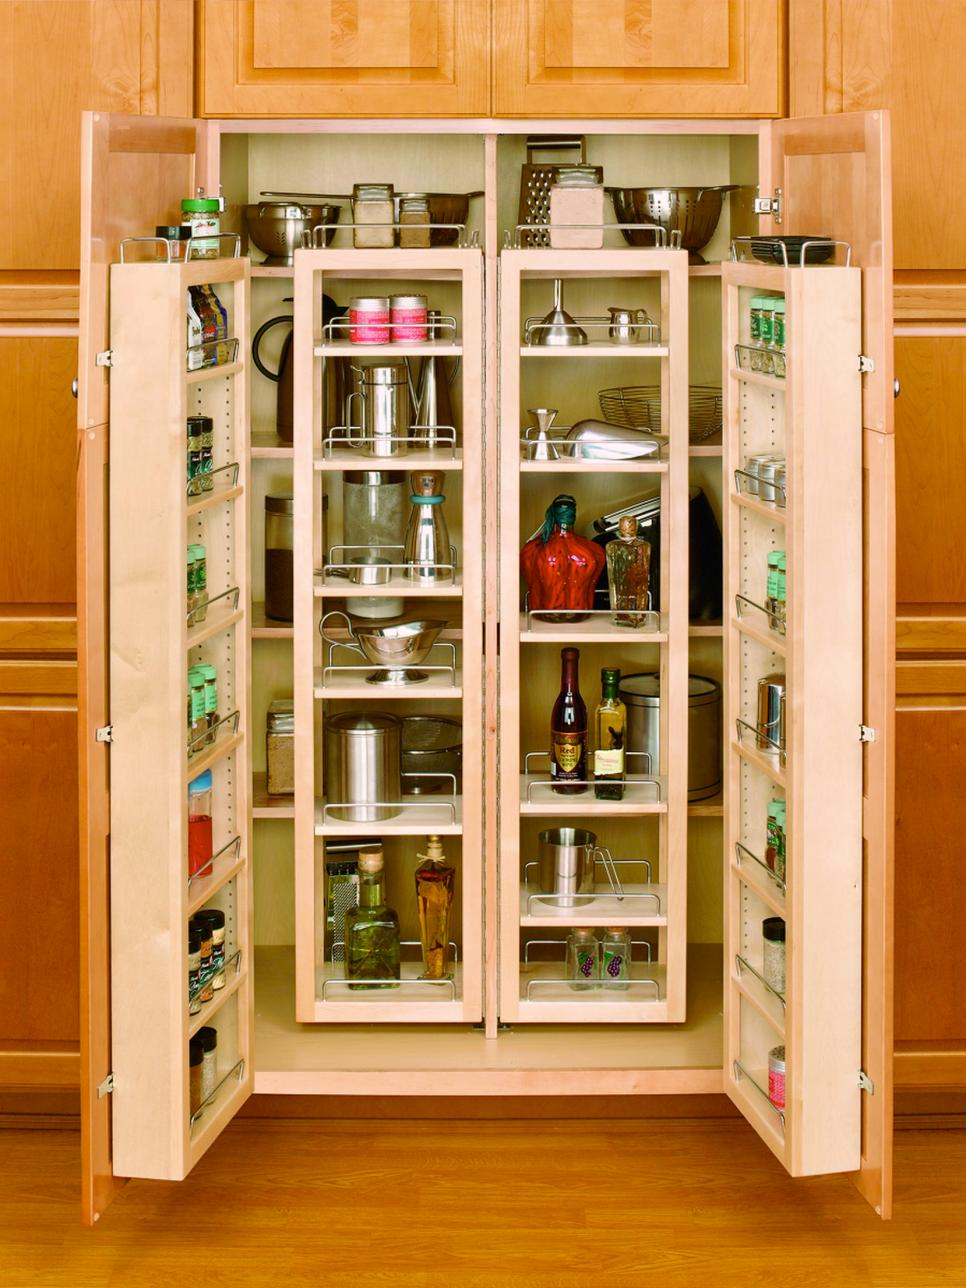 kitchen pantry designs pictures. Standalone Solution Organization and Design Ideas for Storage in the Kitchen Pantry  DIY